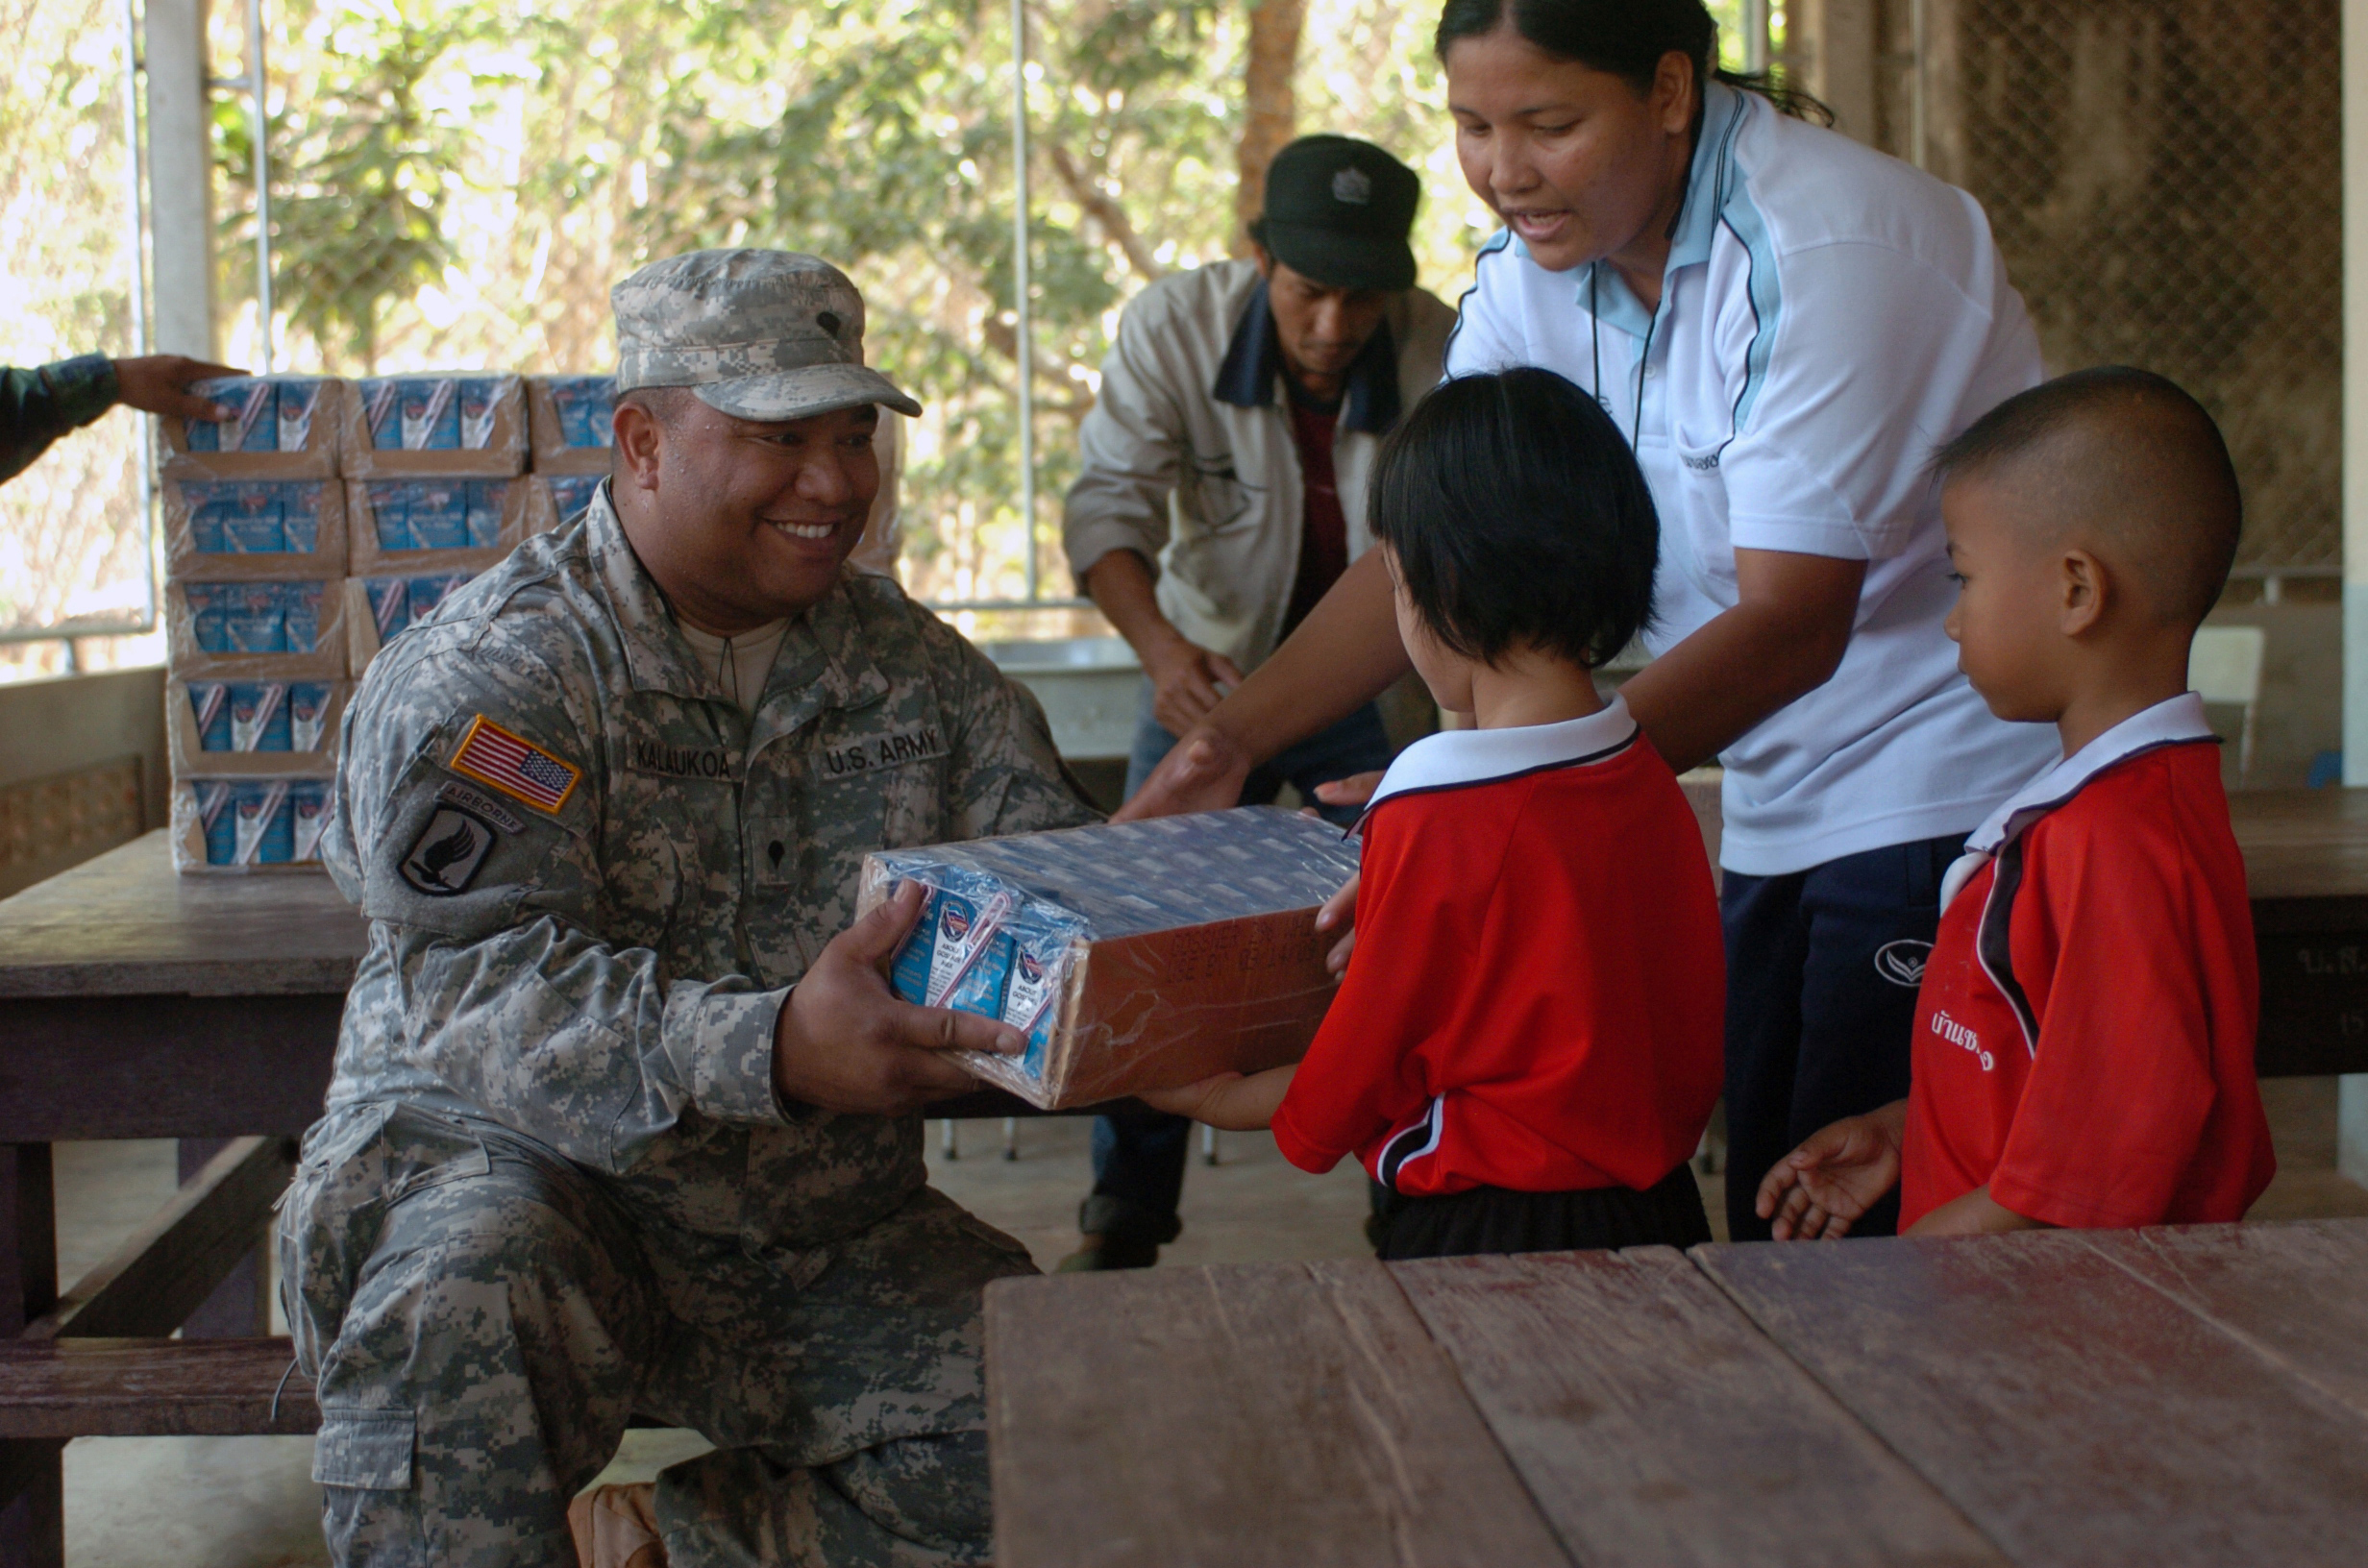 Us Army National Guard >> File:Flickr - The U.S. Army - Hawaii Soldiers, Thai Marines distribute 37,000 cartons of milk to ...